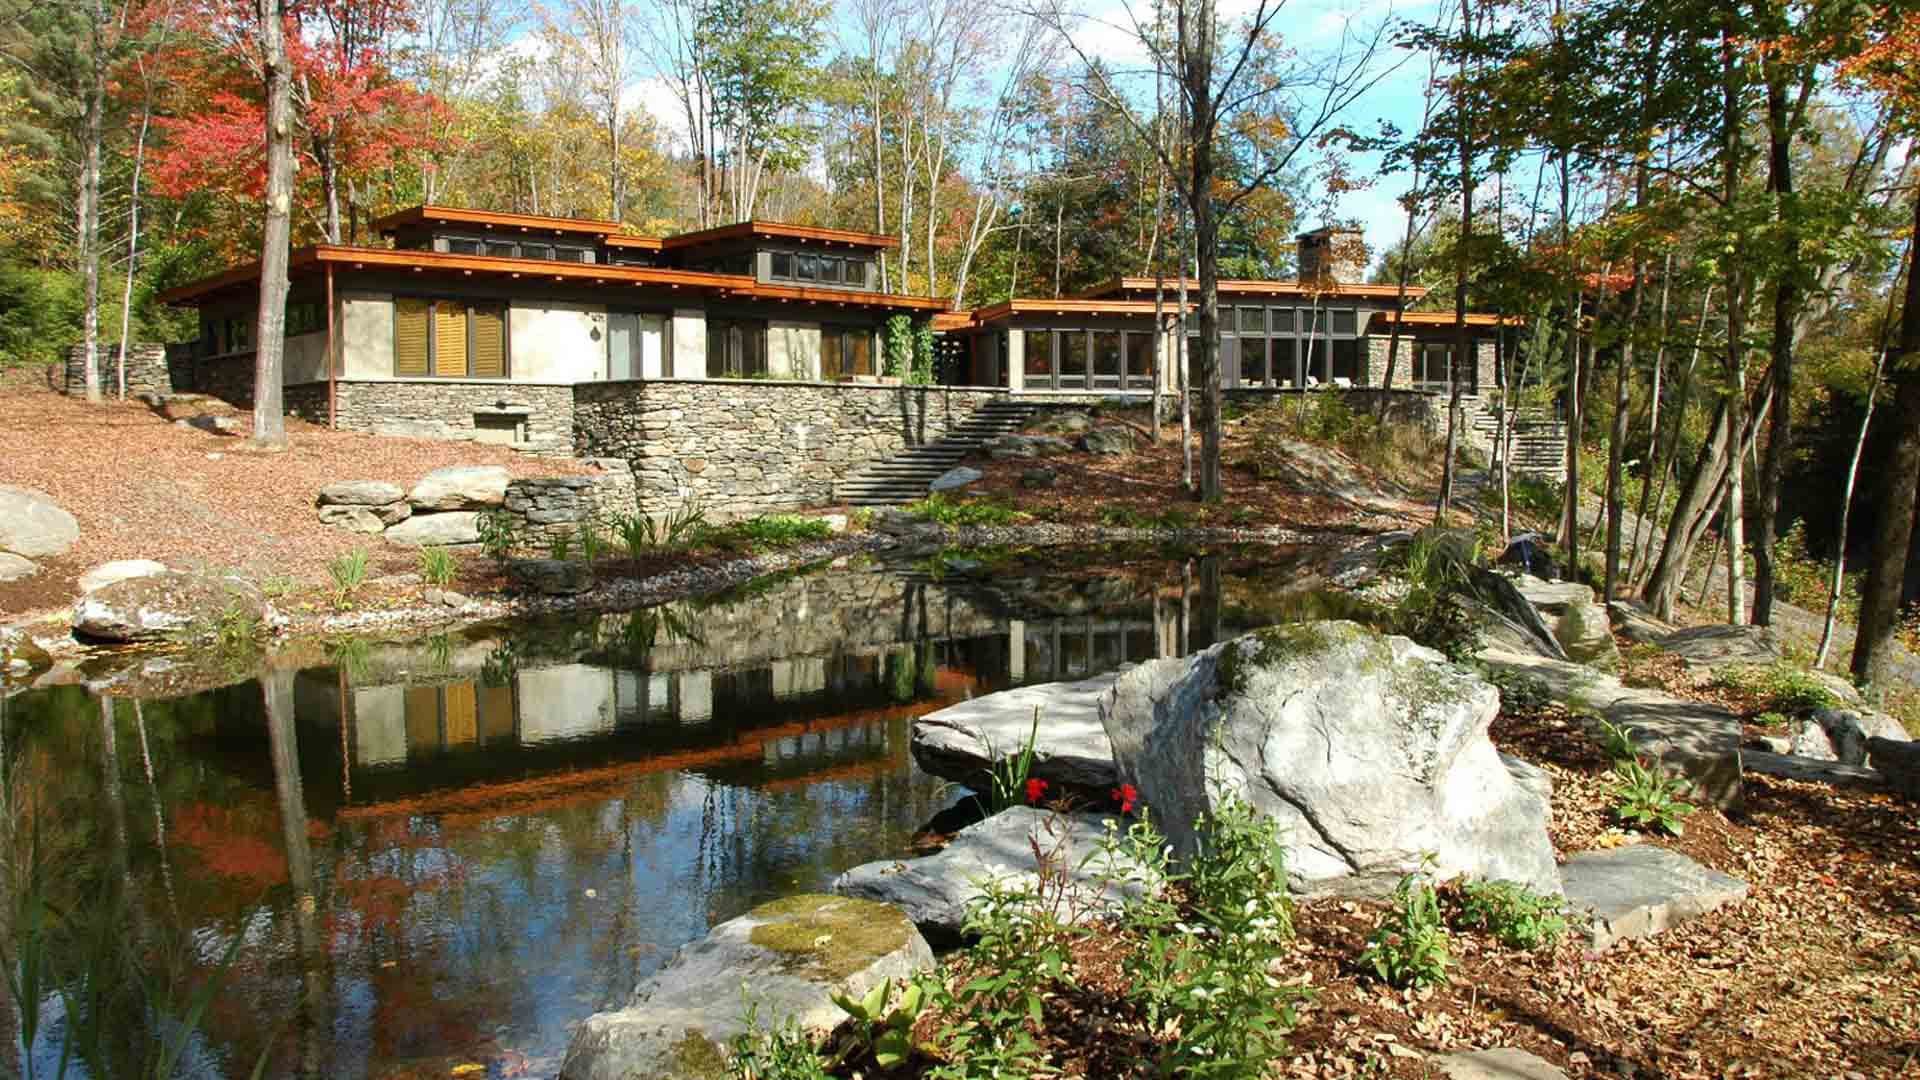 Architecture and design of River House - Middlesex, Vermont